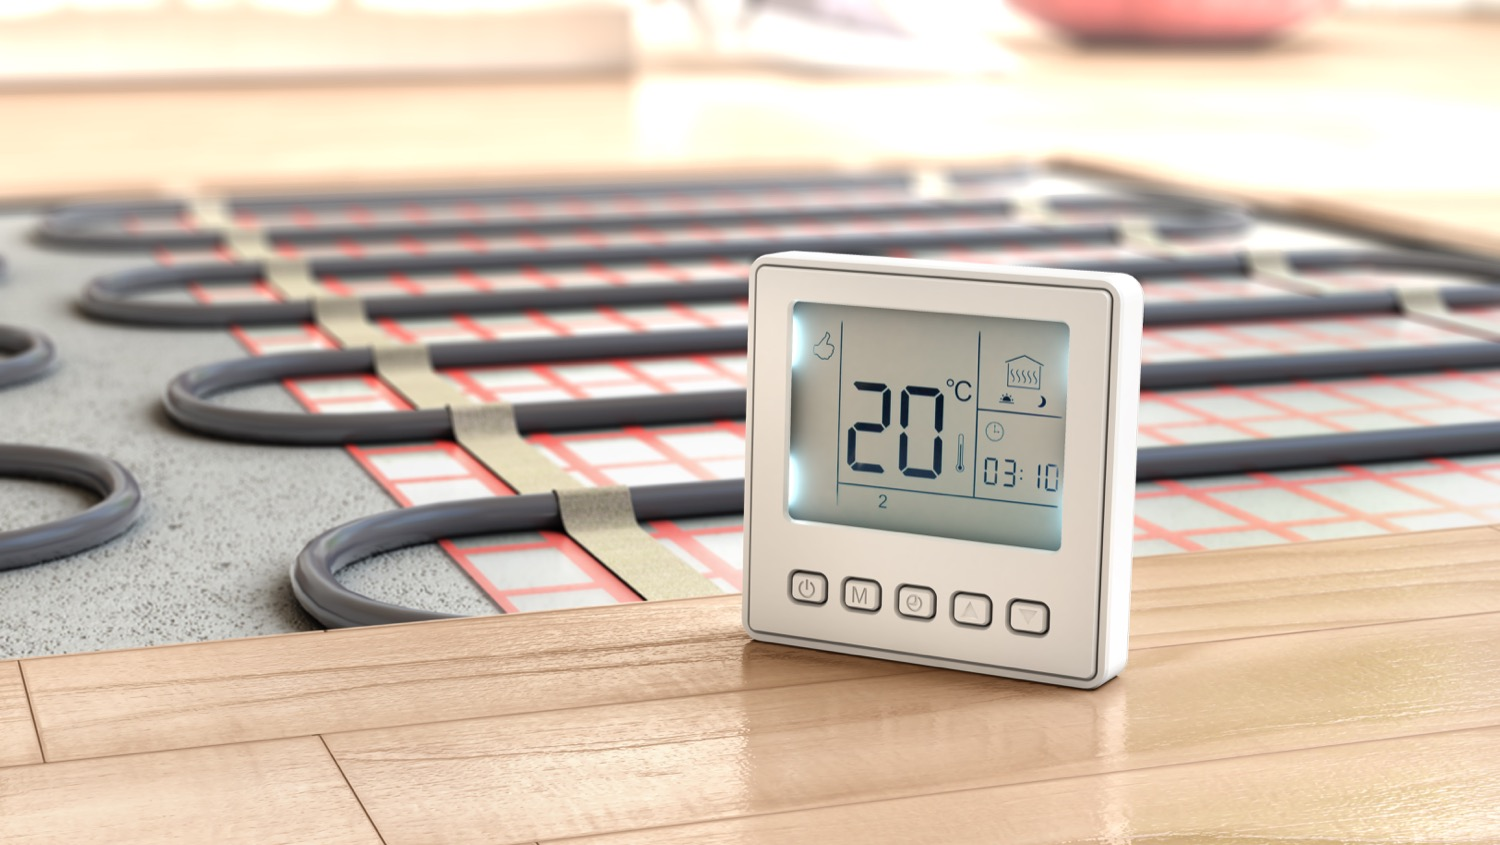 A thermostat on the floor next to an exposed radiant floor heating system.